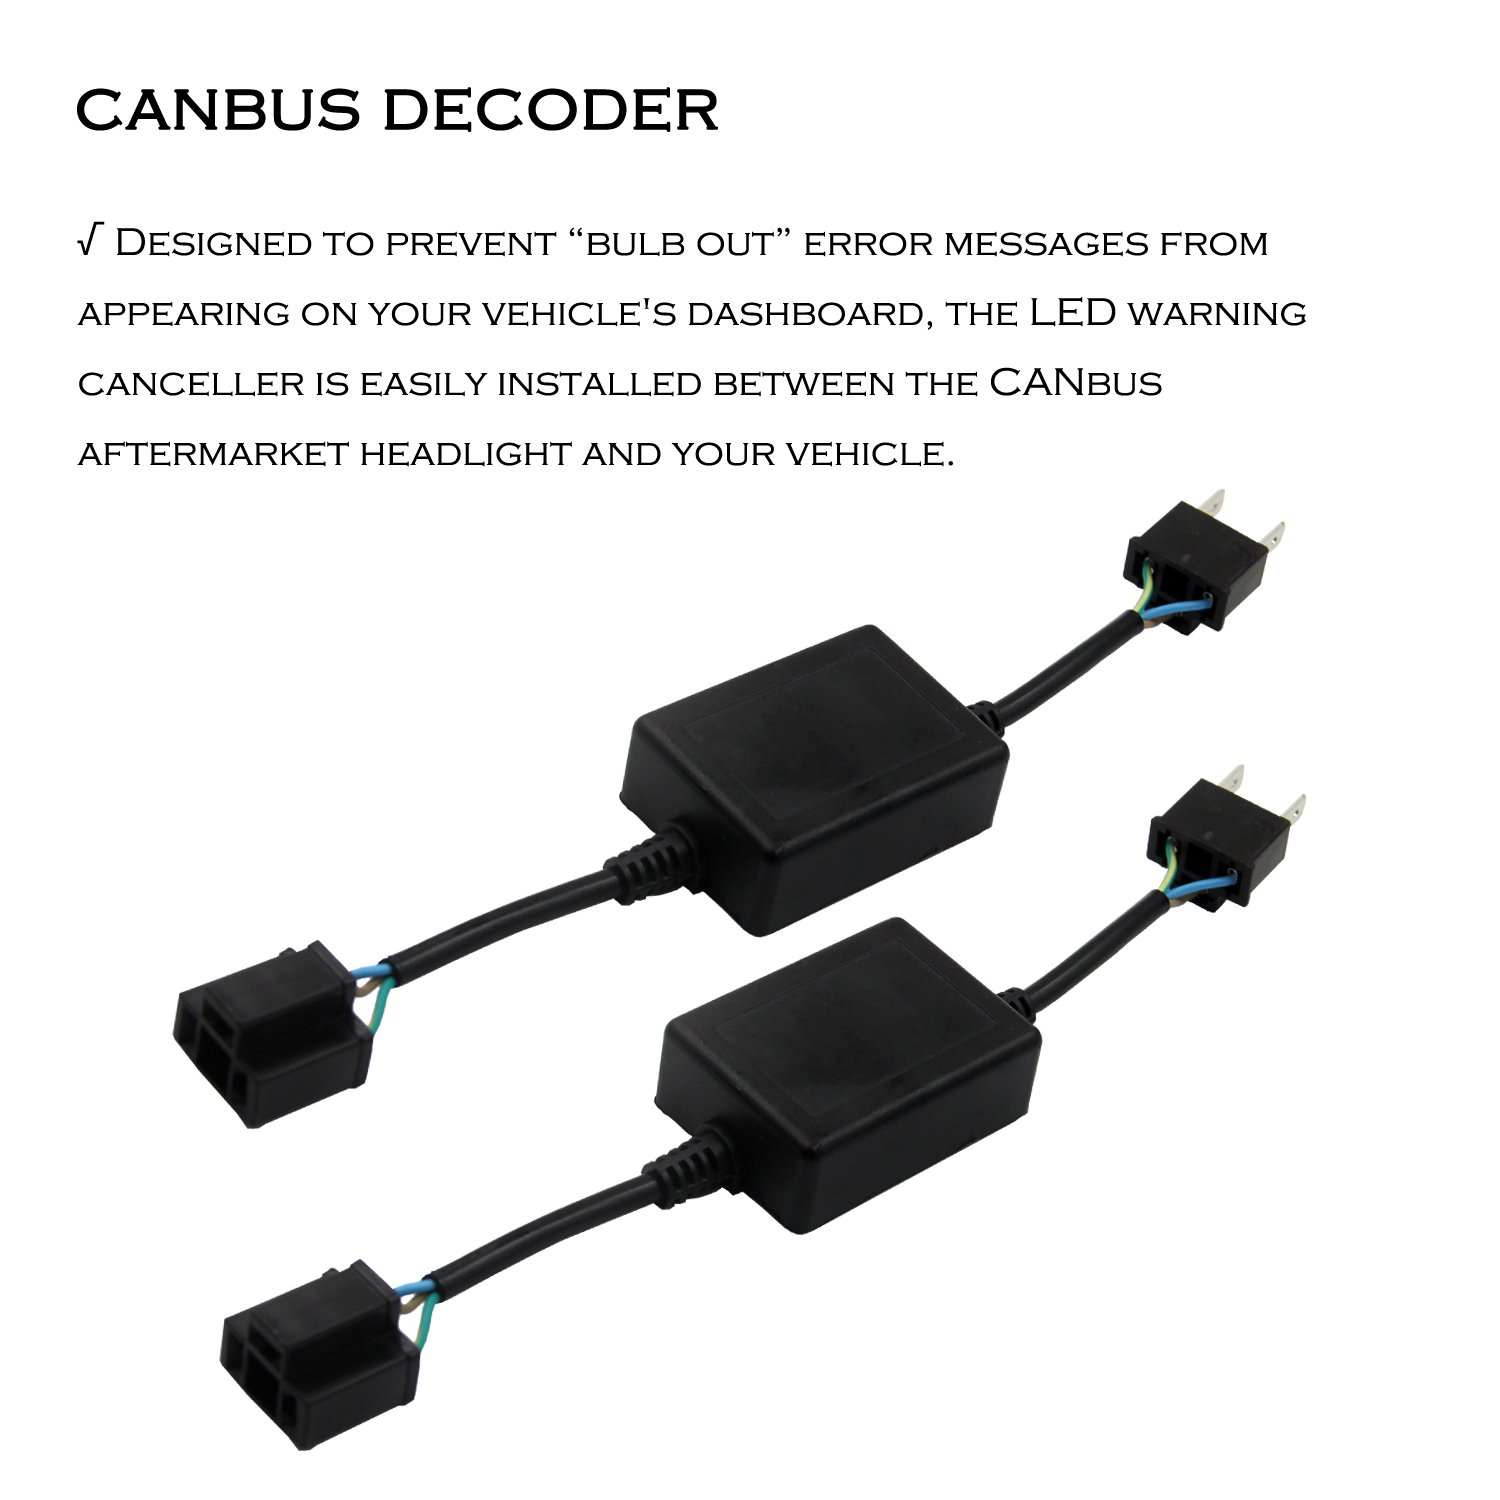 Huizen H4 9003 Hb2 Hi Lo Led Headlight Bulbs Vw Can Bus Decoder Wiring Diagram Conversion Kit Motorcycle W Canbus Free Philips Zes High Low Beam Fanless